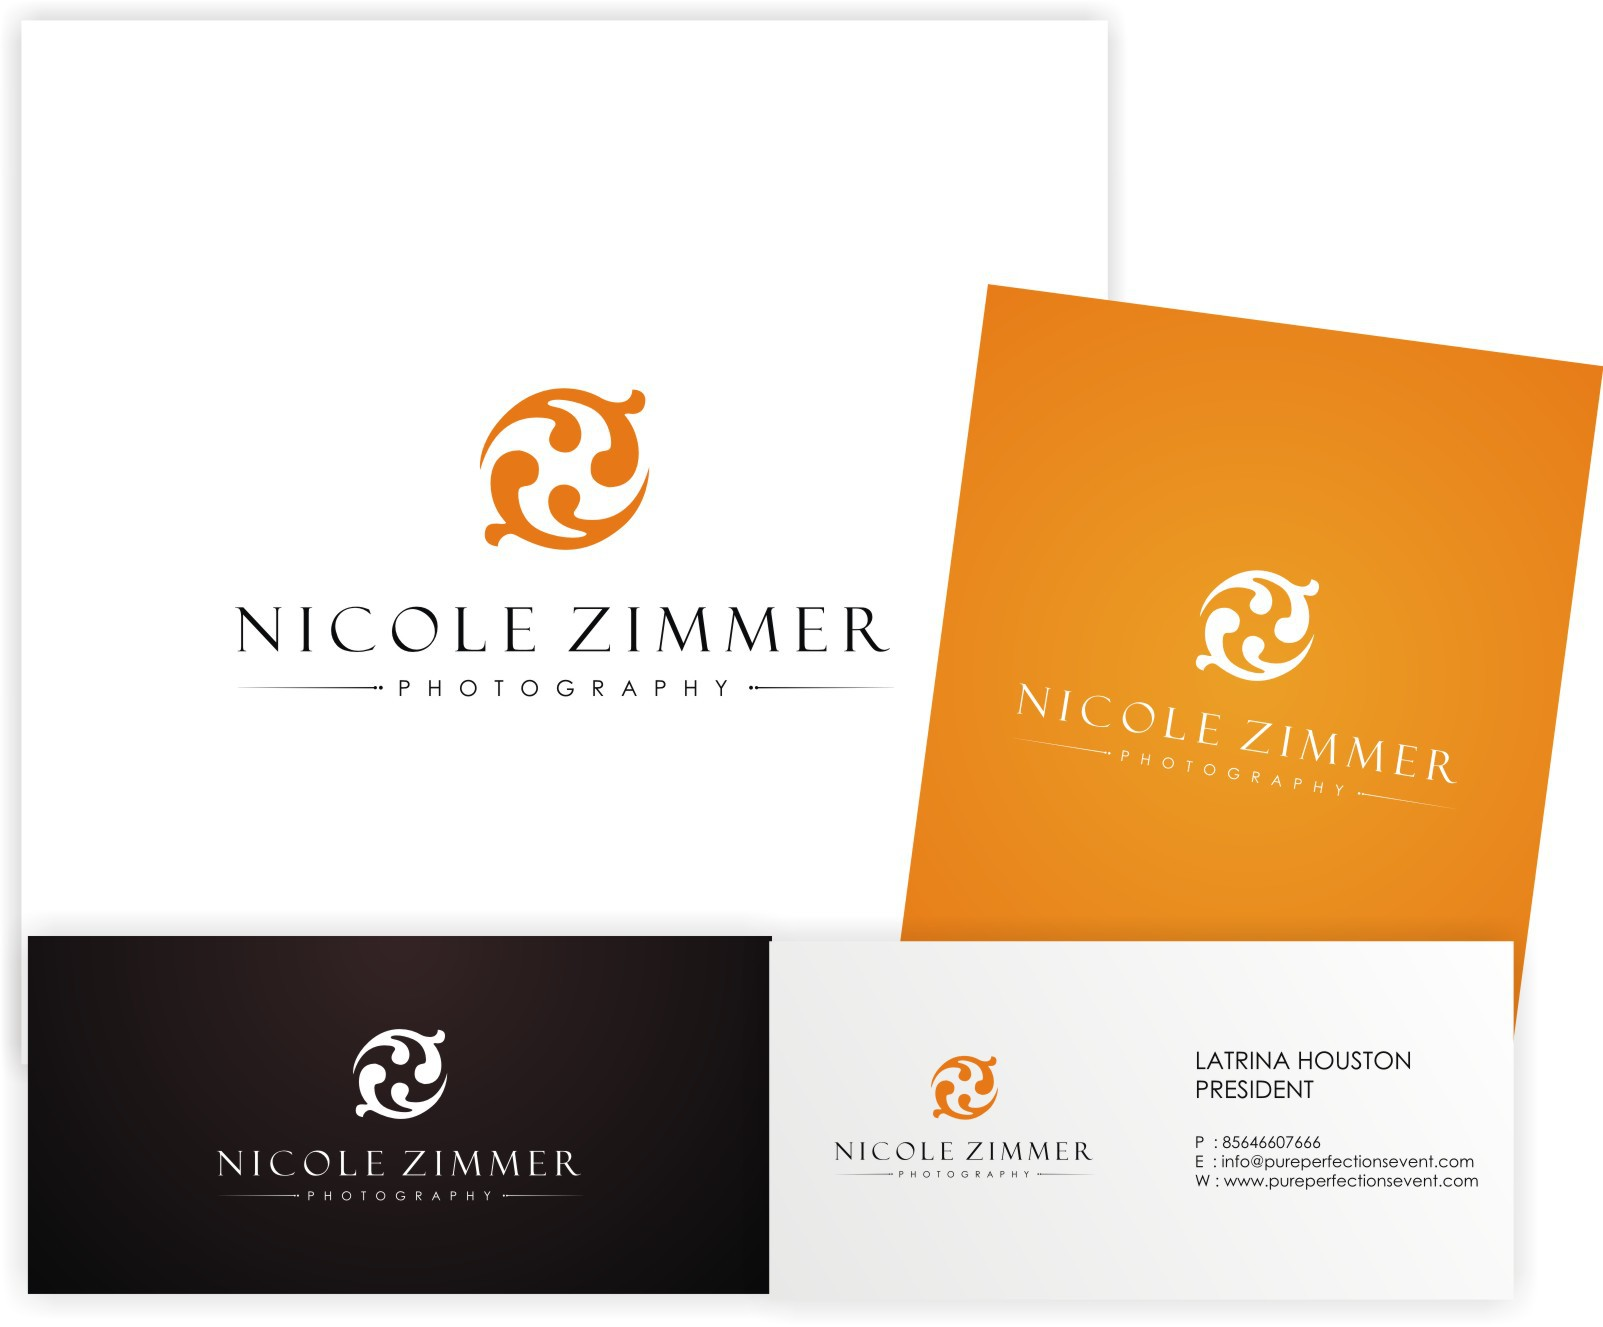 Help Nicole Zimmer Photography with a new logo